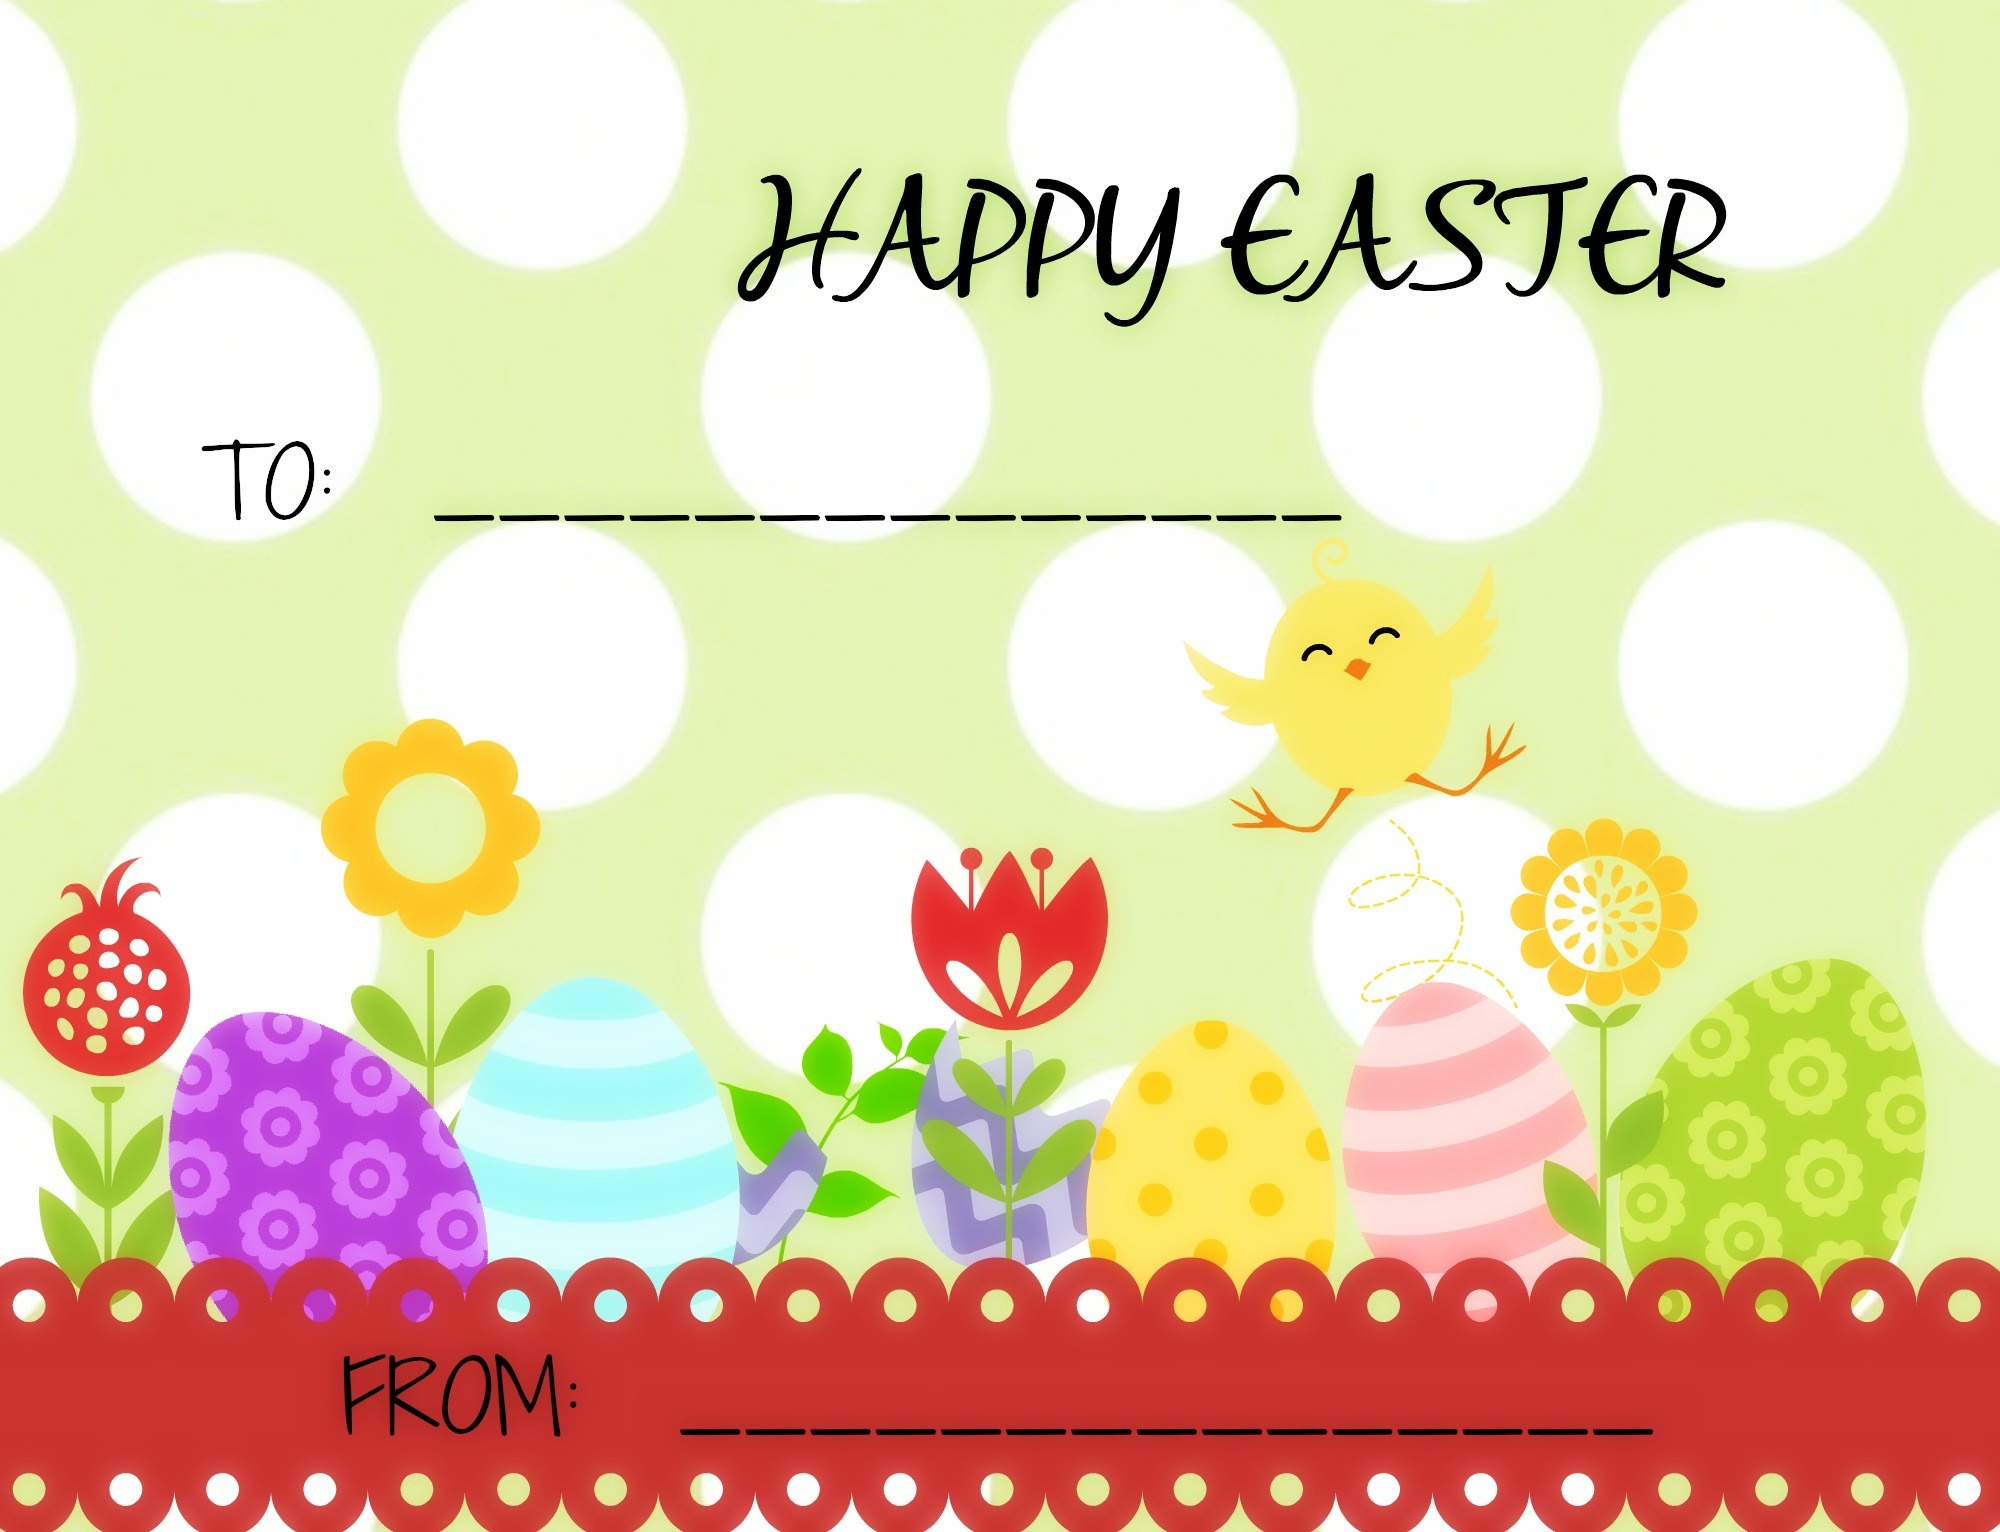 Easter Tags- Free Printable Tags For Gift Giving | Gully Creek Cottage - Free Easter Name Tags Printable